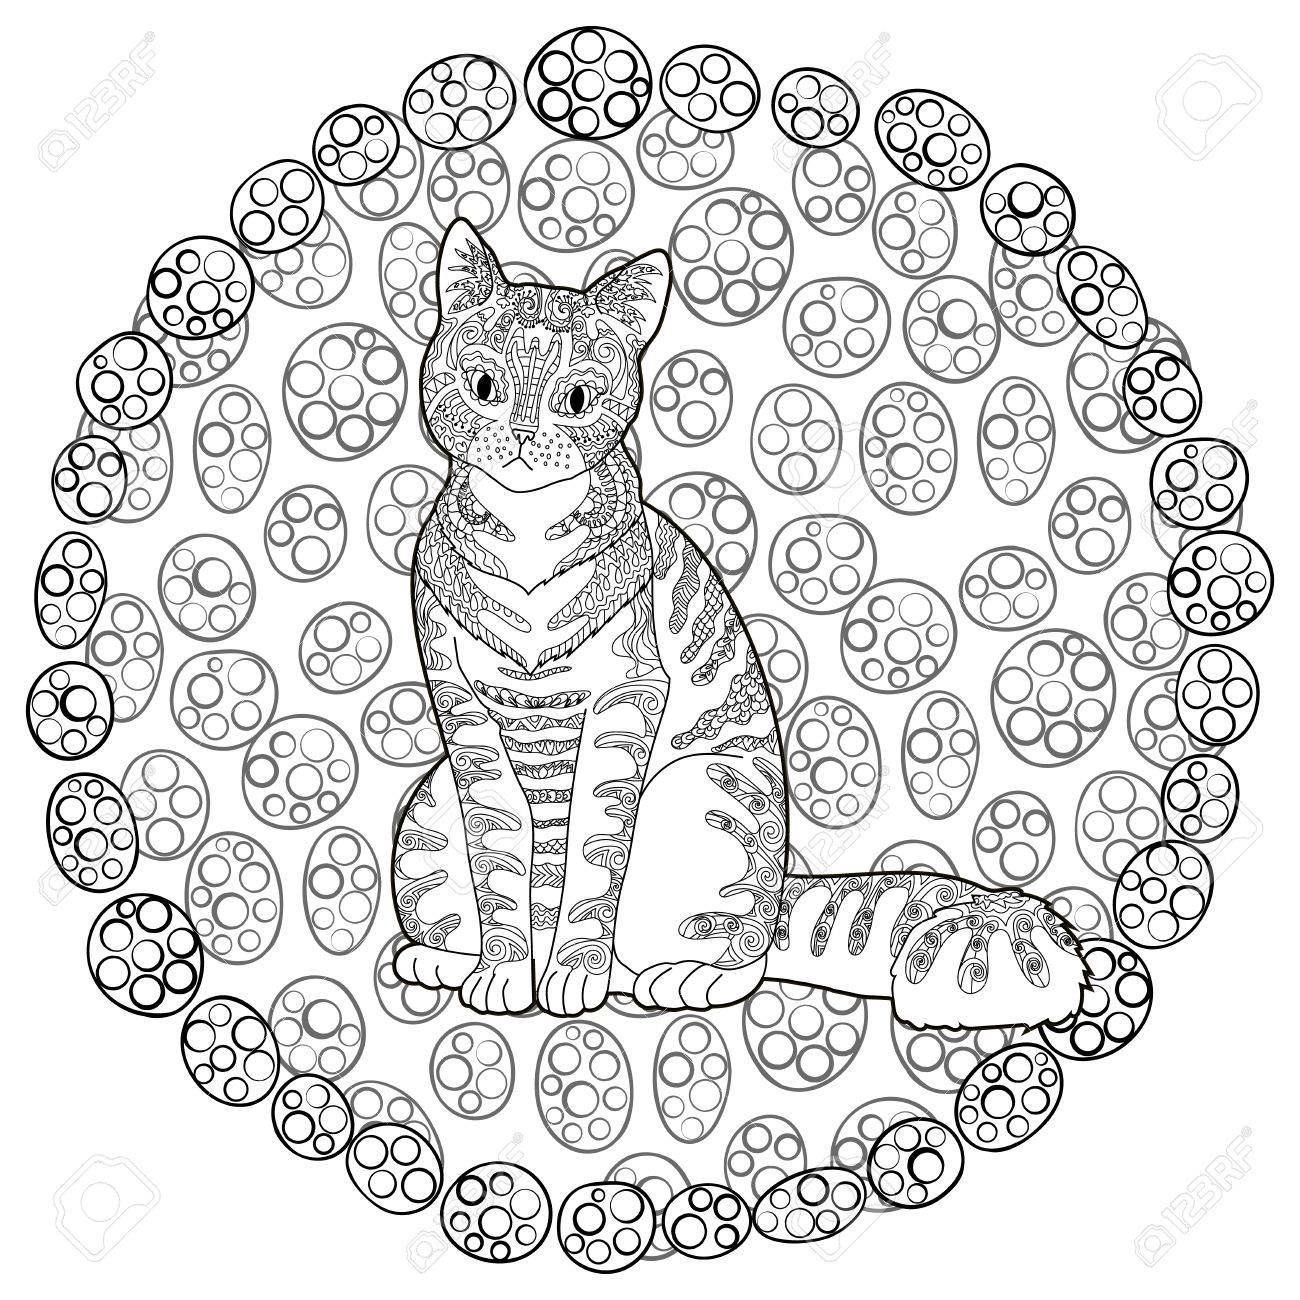 high detail patterned cat in style adult coloring page for anti stress art therapy with